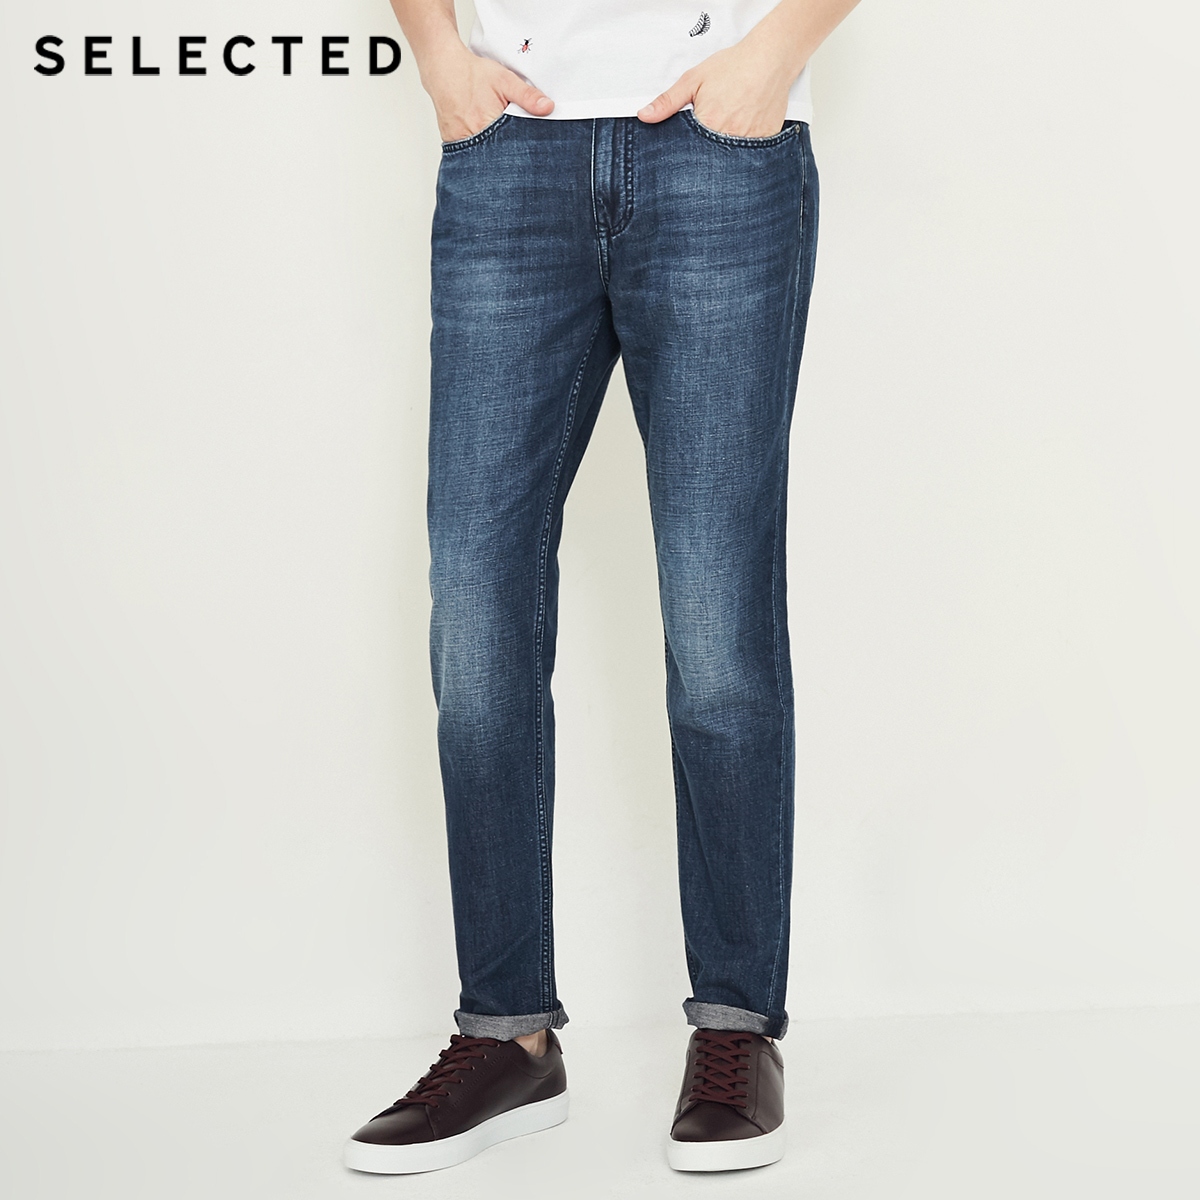 SELECTED Men Jeans Modis Cotton amp Linen Do Old Edge Grinding Prewashed Male Casual Denim Pants C 418332513 in Jeans from Men 39 s Clothing